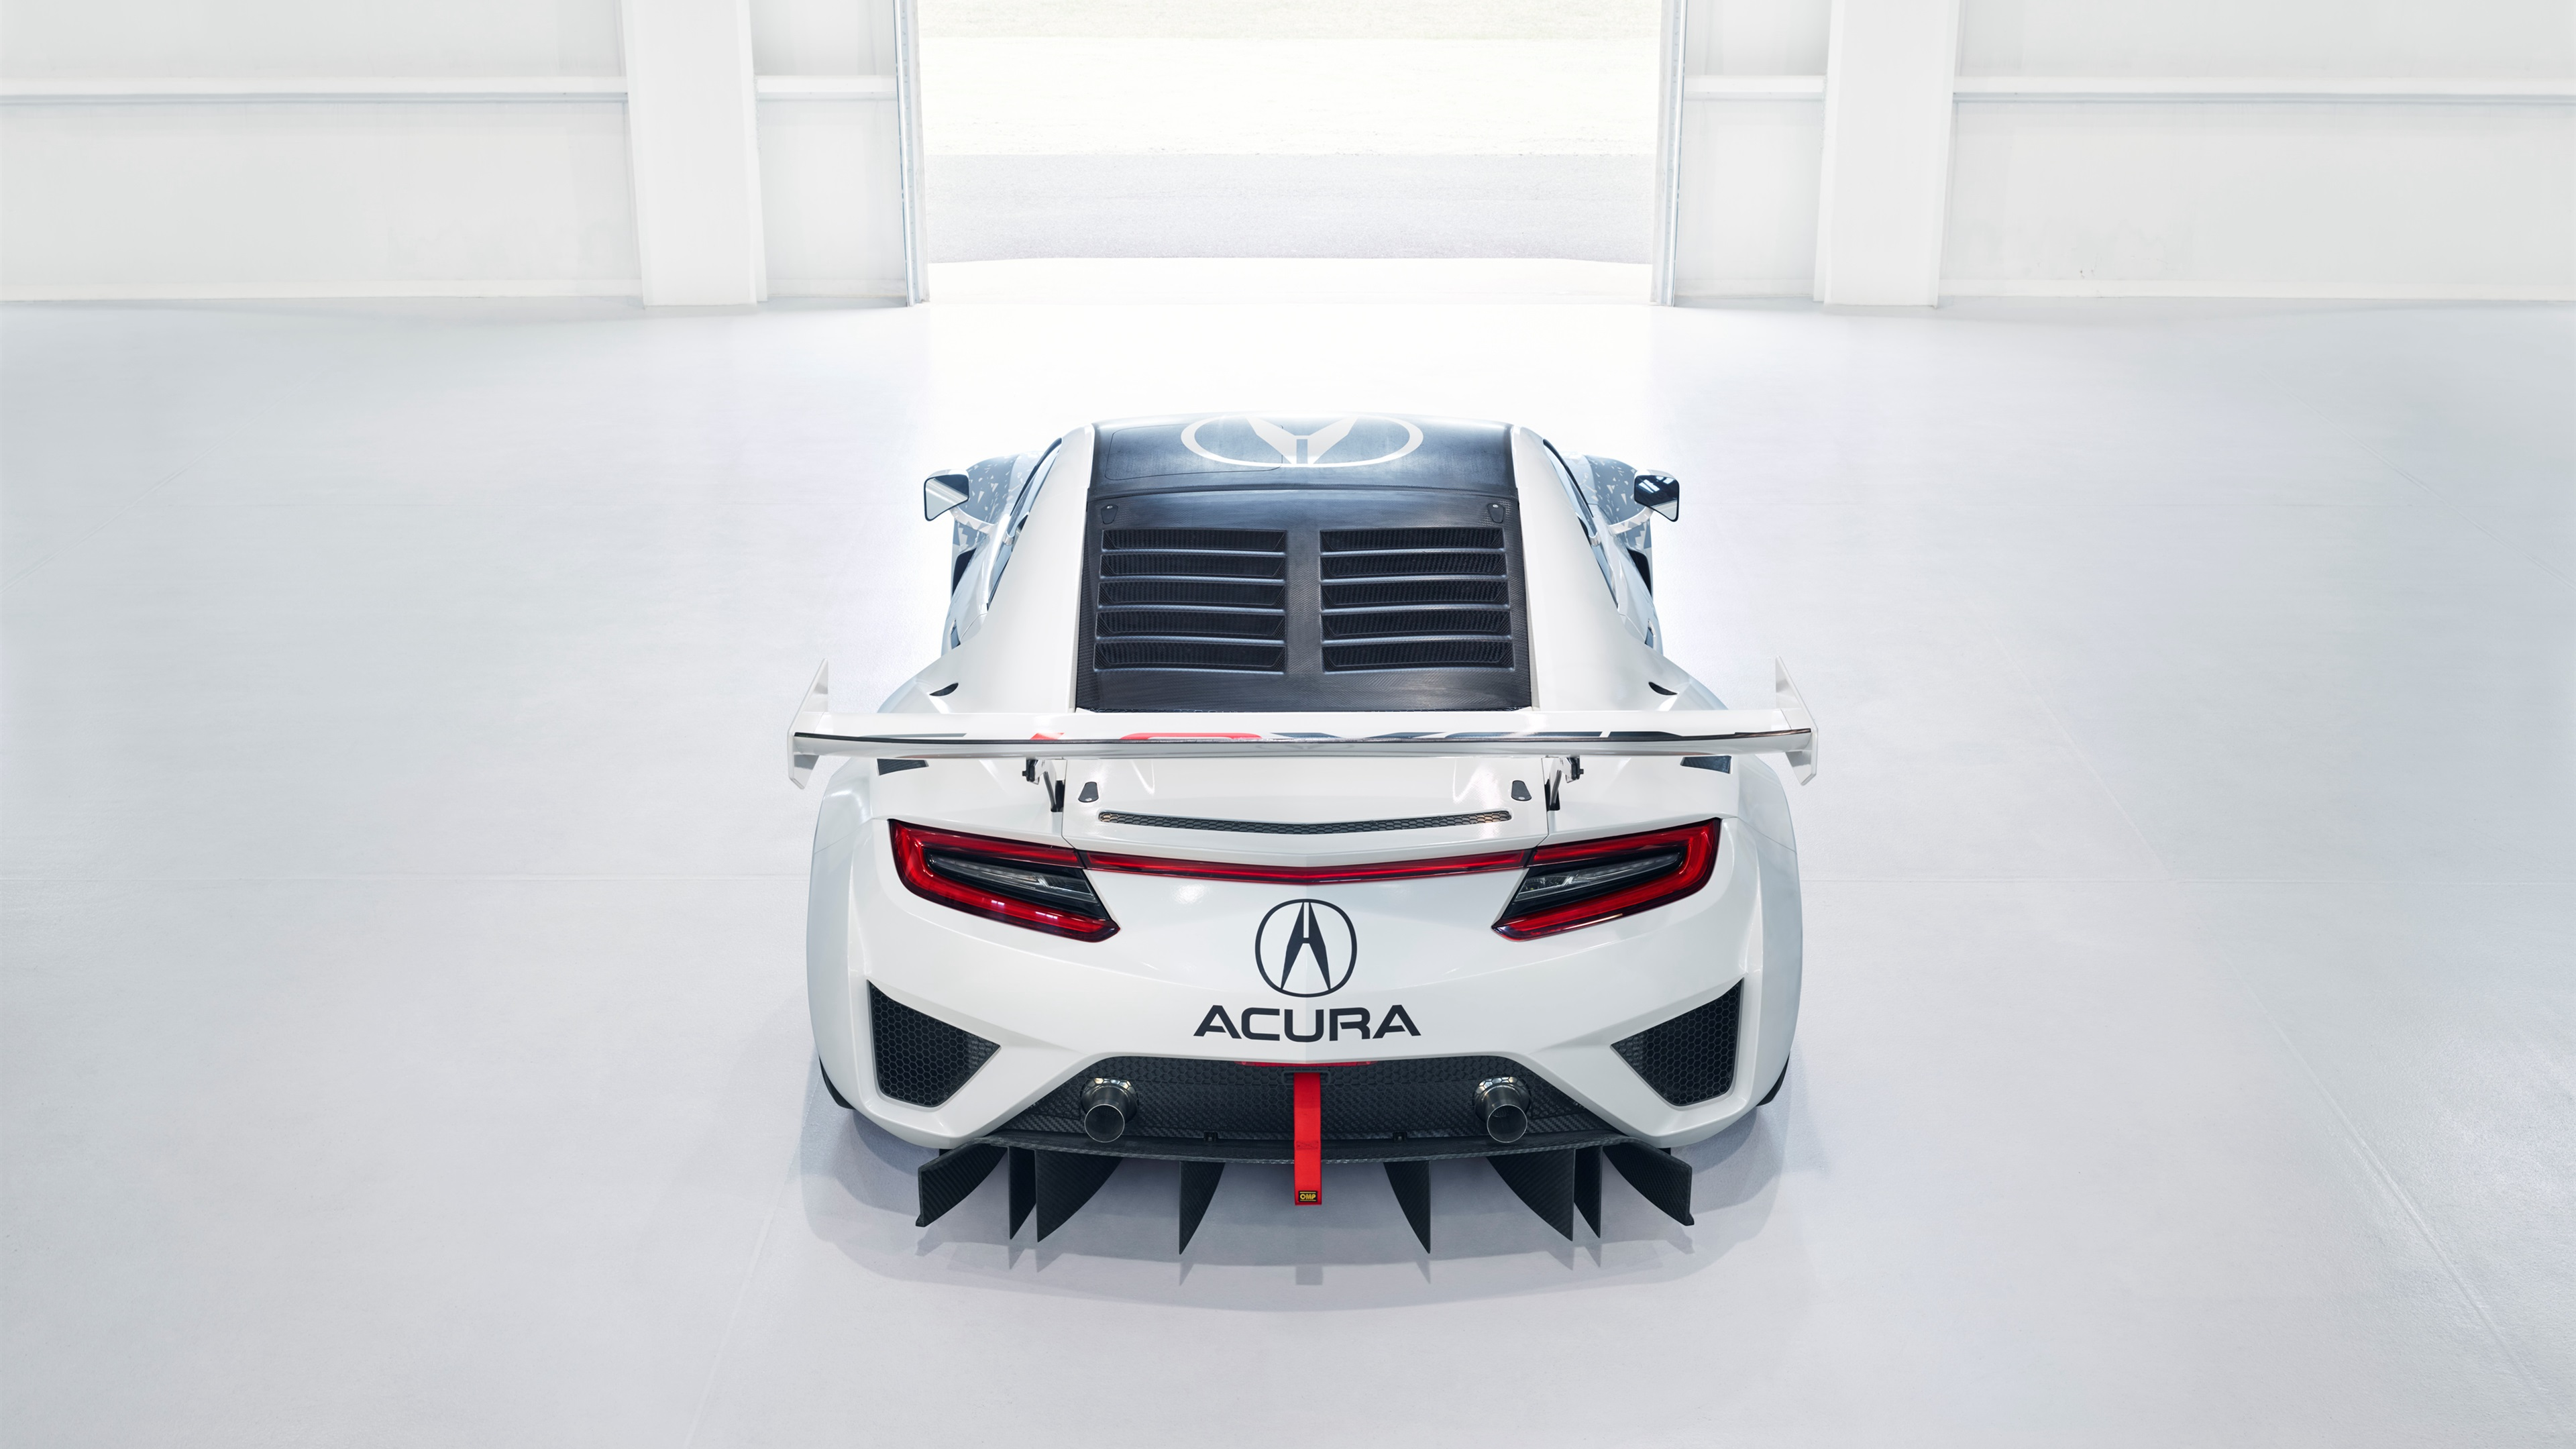 Wallpaper Acura NSX GT3 supercar back view 3840x2160 UHD 4K